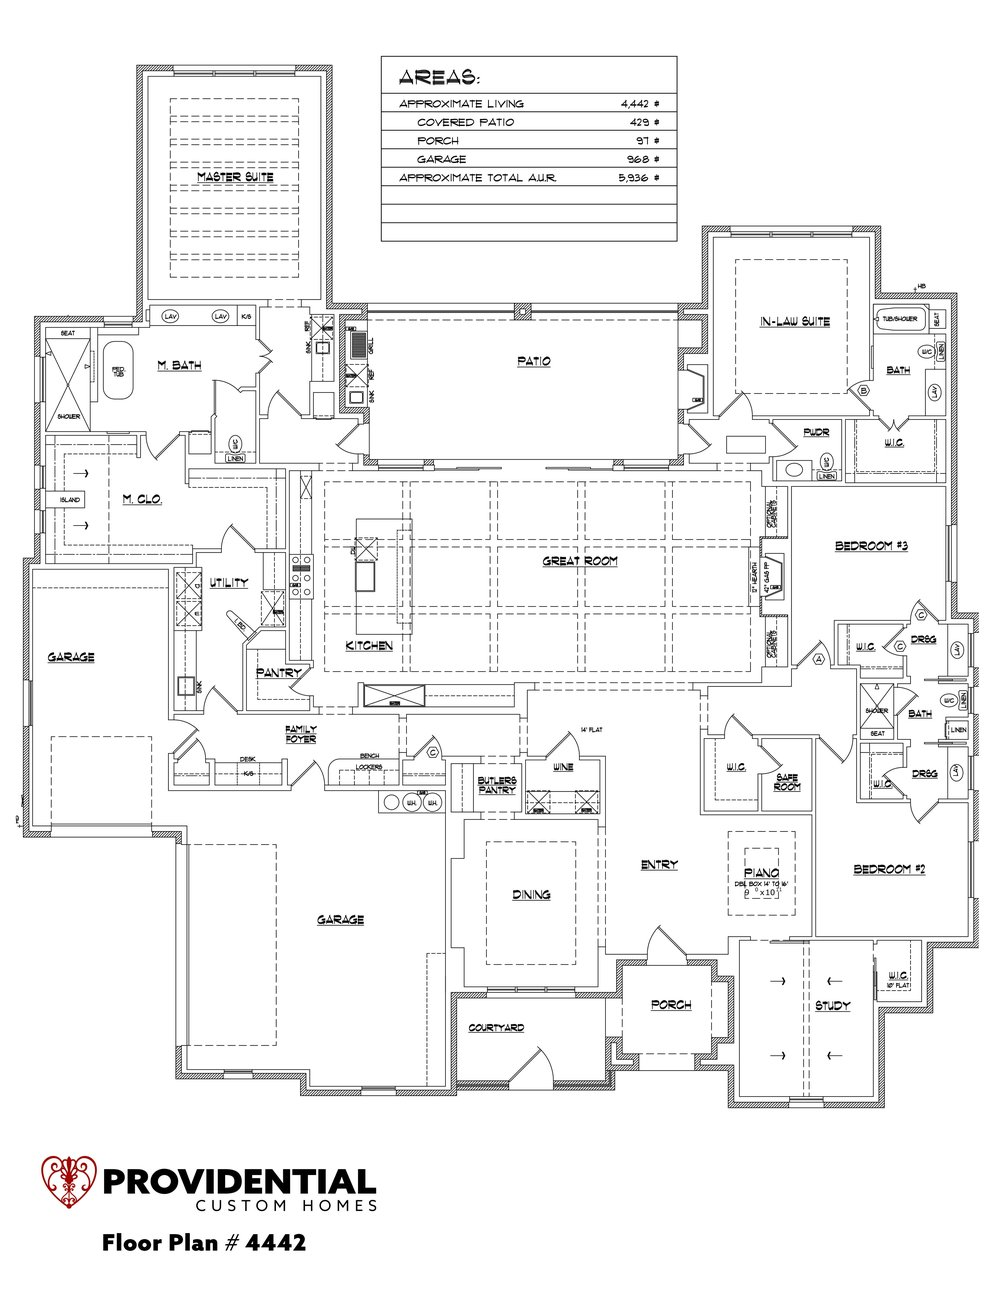 The FLOOR PLAN #4442.jpg